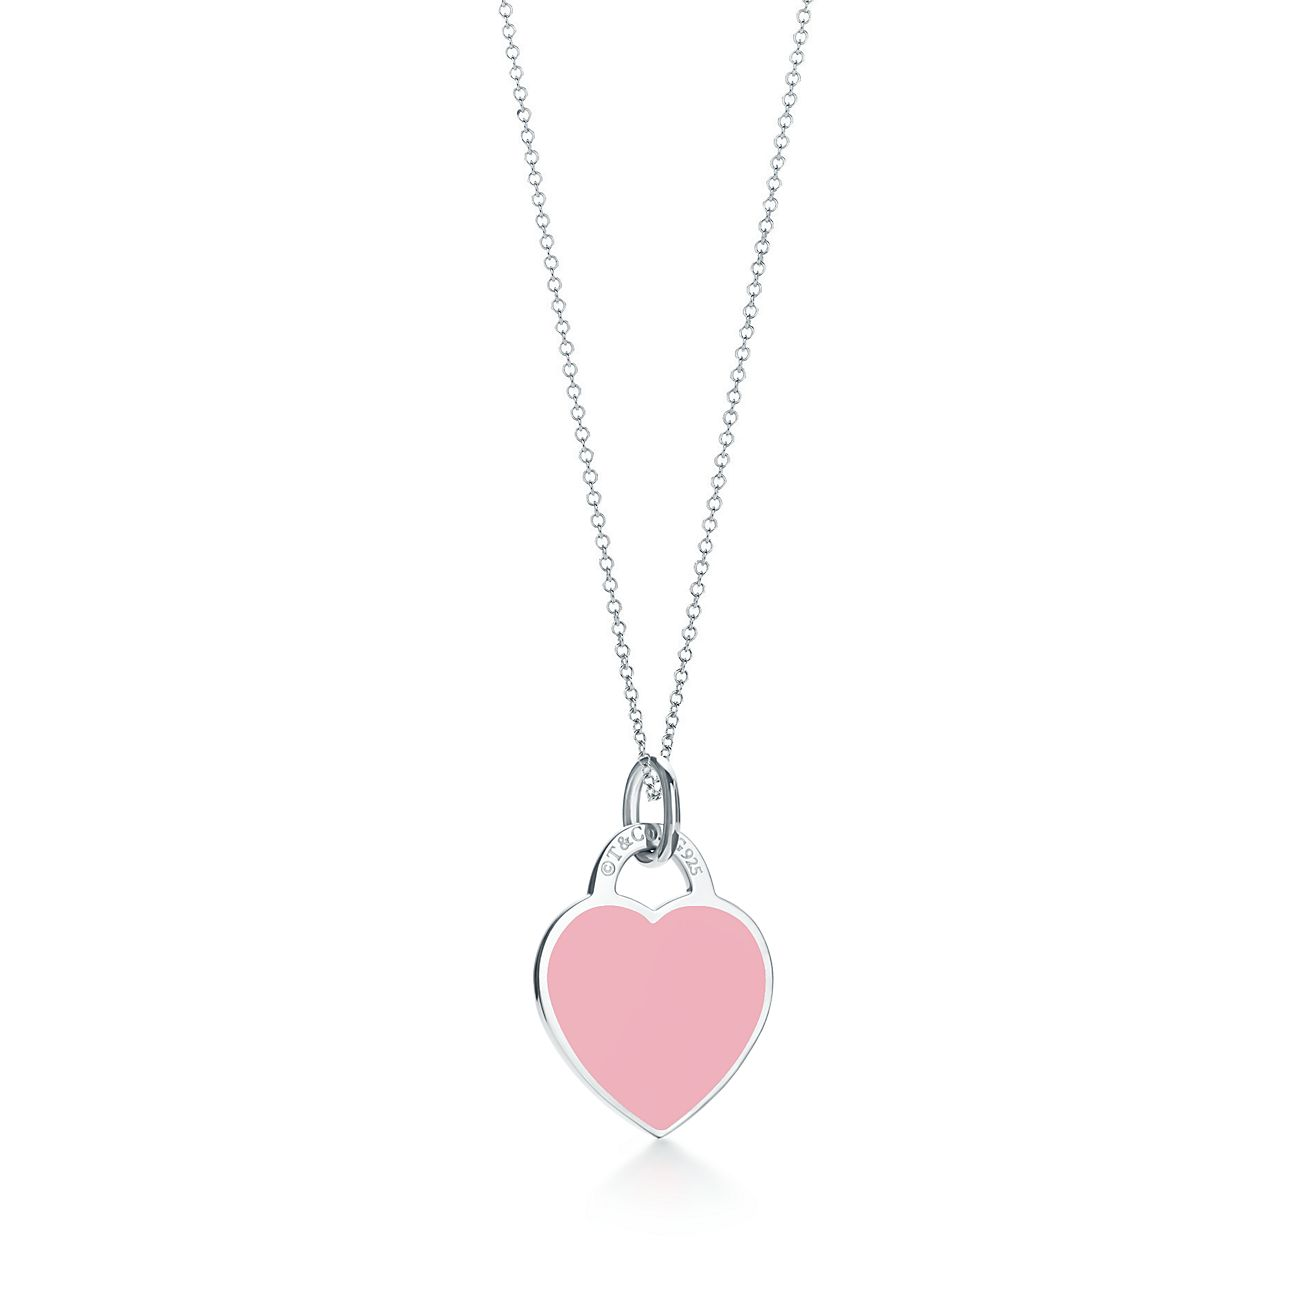 2019 year style- Heart pink necklace photo